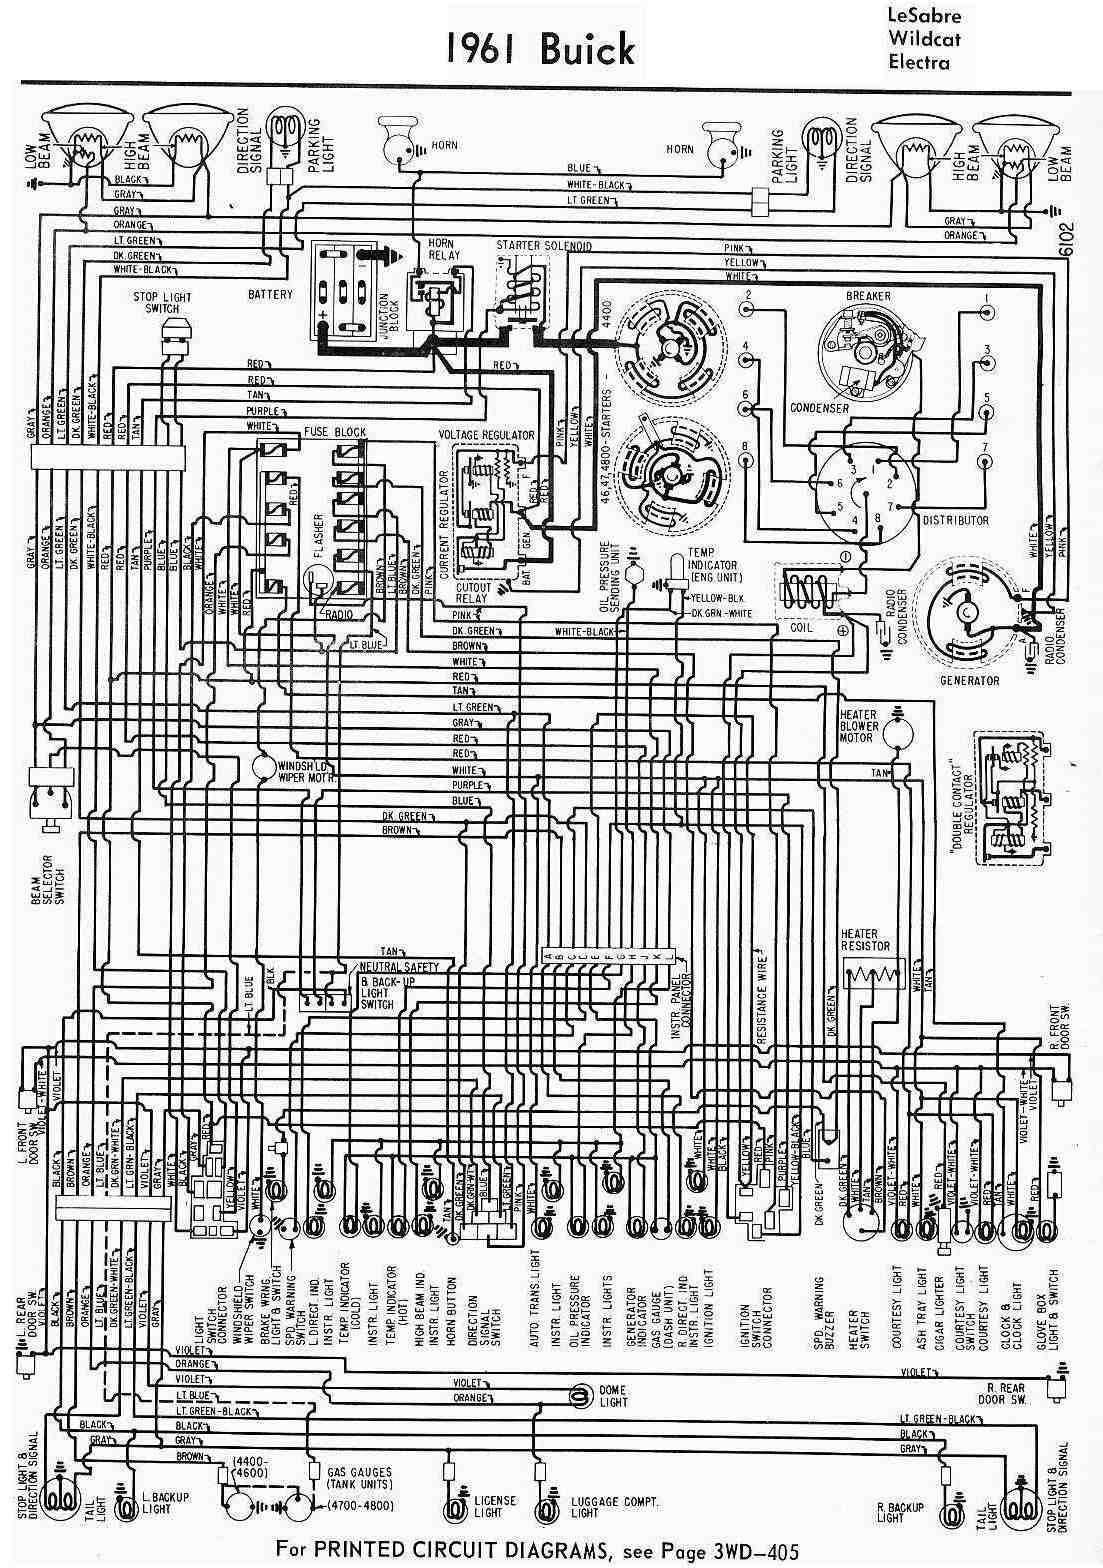 Buick Roadmaster Wiring Schematics Simple Guide About Diagram 1993 Regal Fuse Box 2011 All Diagrams